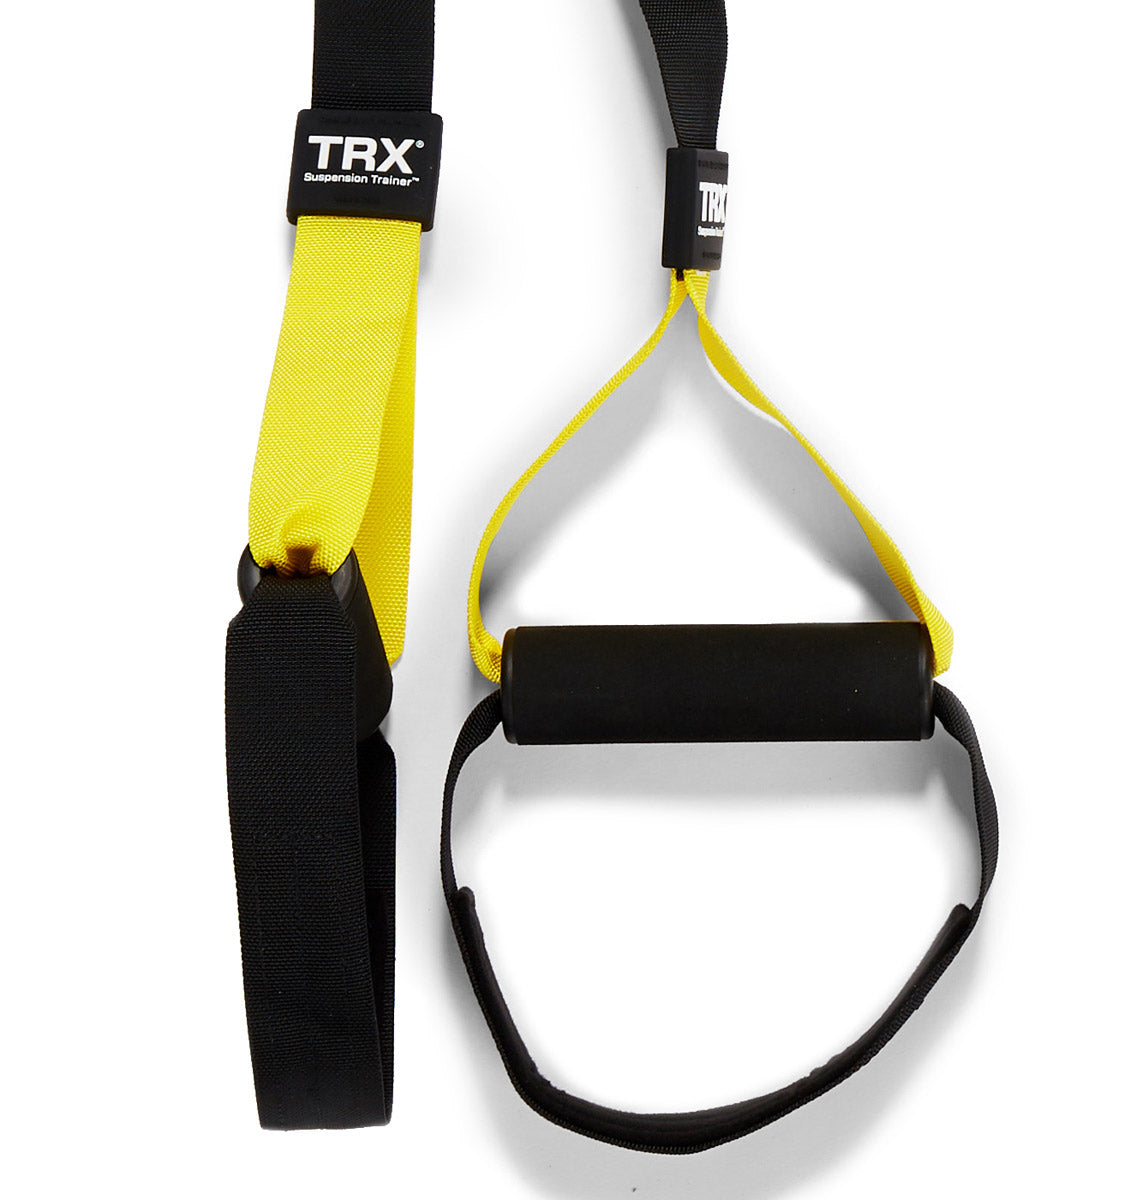 TRX1STRONG000 TRX TRX STRONG Suspension System Handles Close Up